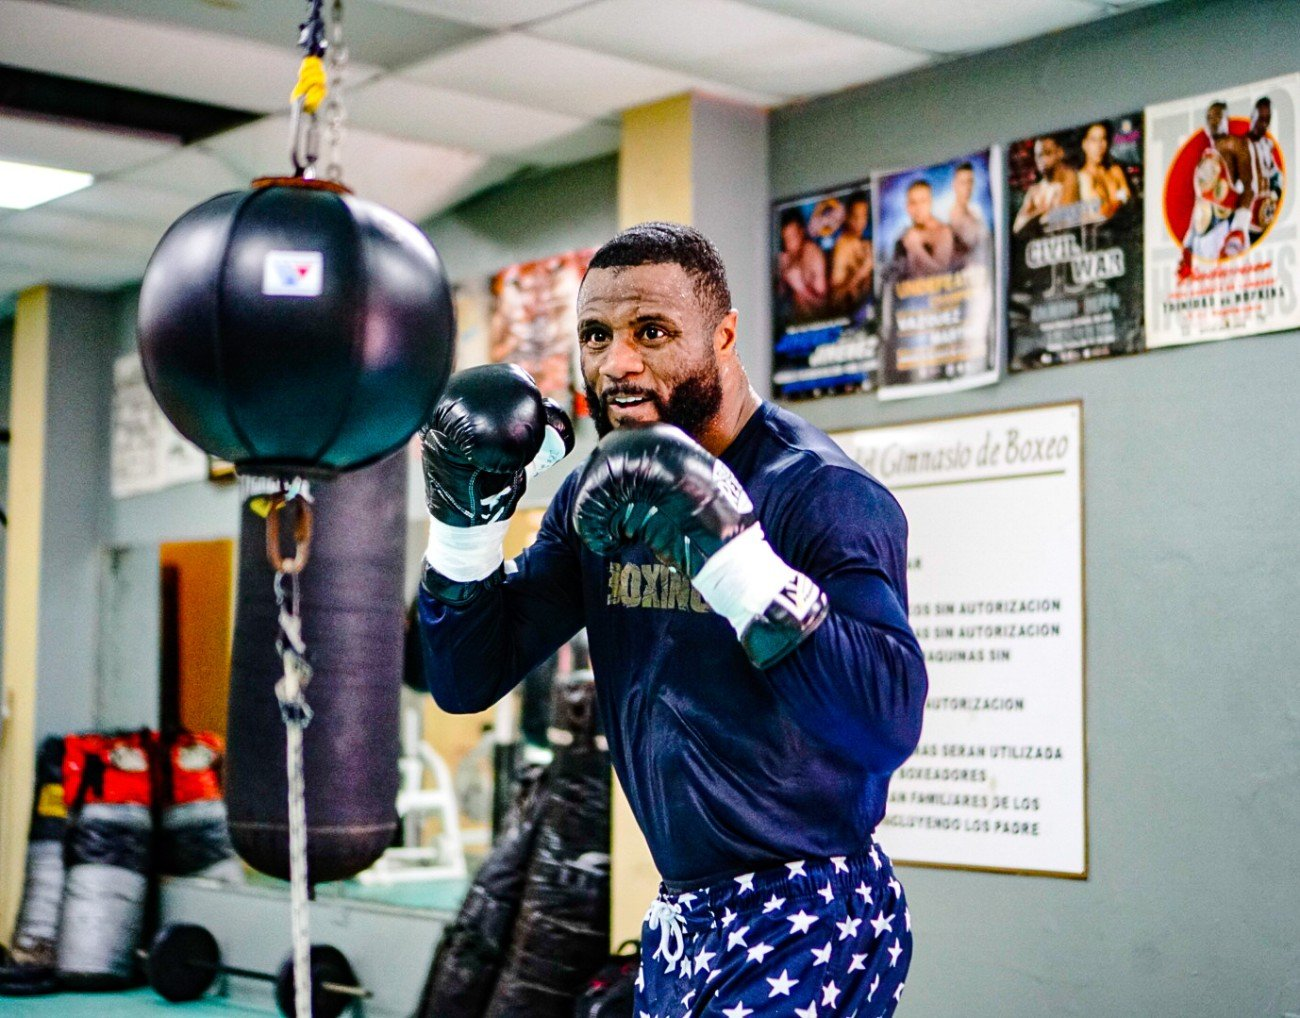 Jean Pascal - As Jean Pascal prepares to defend his WBA Light Heavyweight Title, the two-time world champion shared an update from his training camp in Puerto Rico as he prepares to take on two-division champion Badou Jack Saturday, December 28 live on SHOWTIME from the award-winning State Farm Arena in Atlanta in a Premier Boxing Champions event.